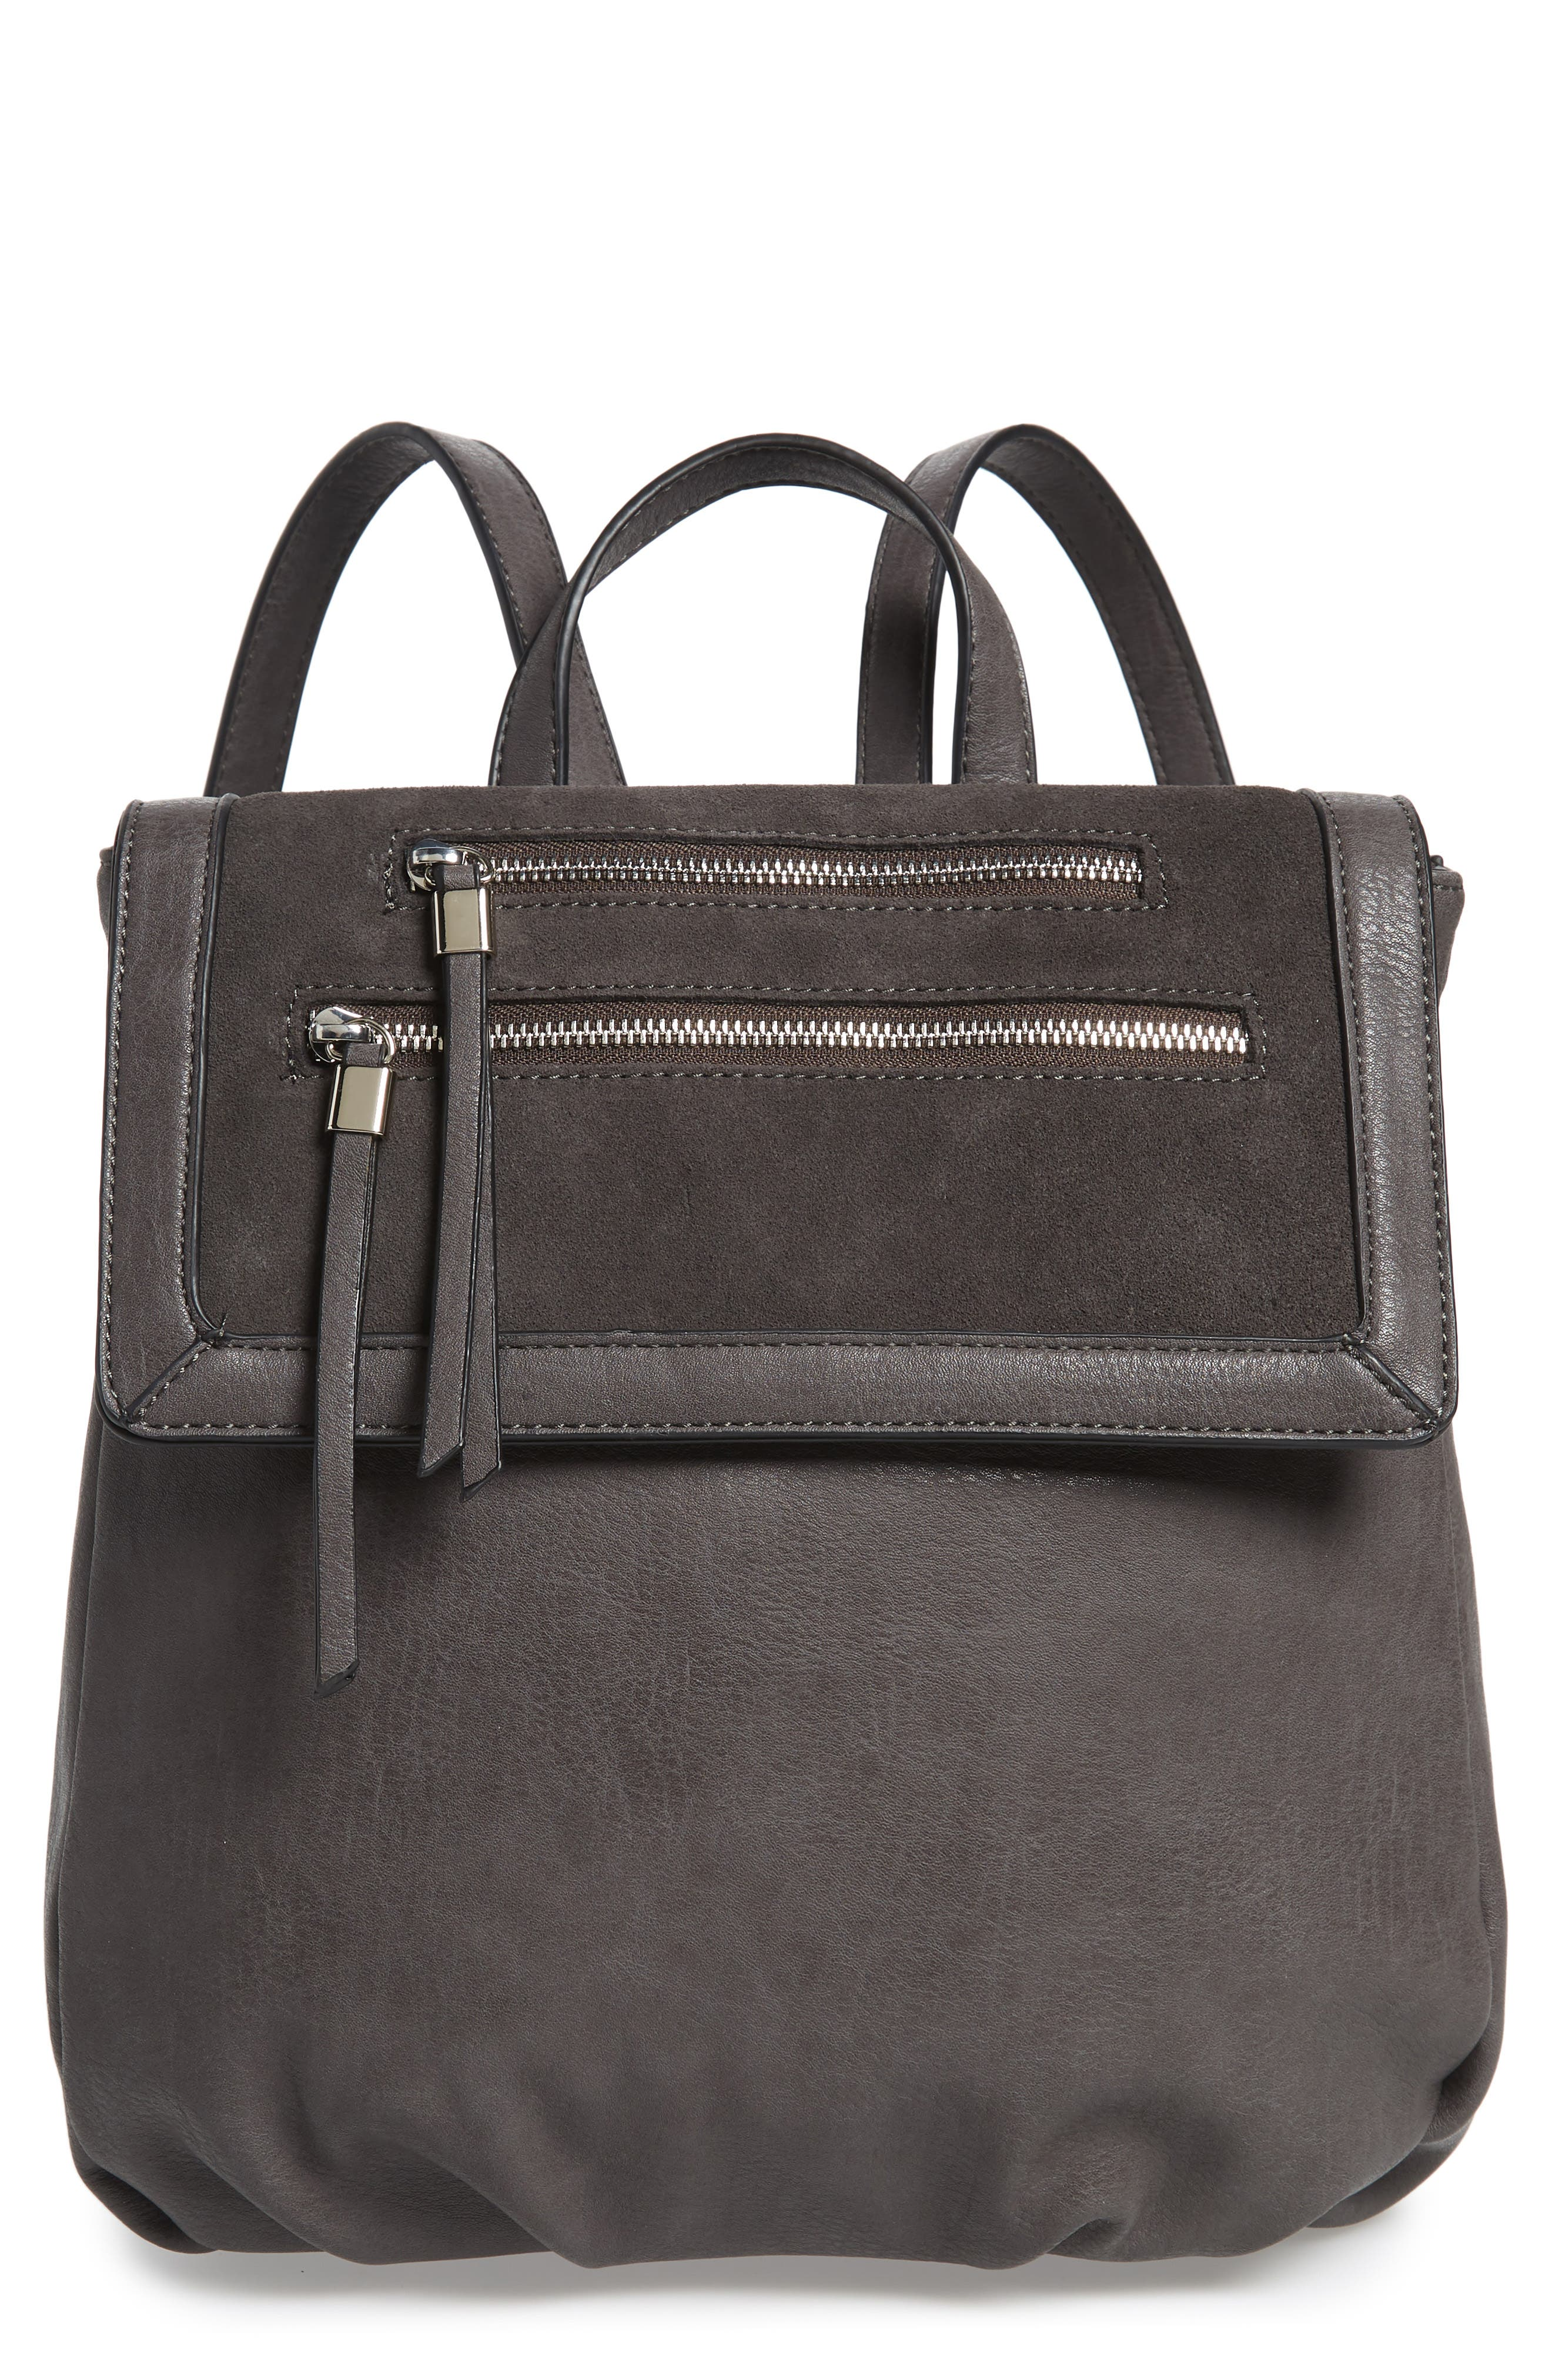 Chele Backpack,                             Main thumbnail 1, color,                             DARK GREY